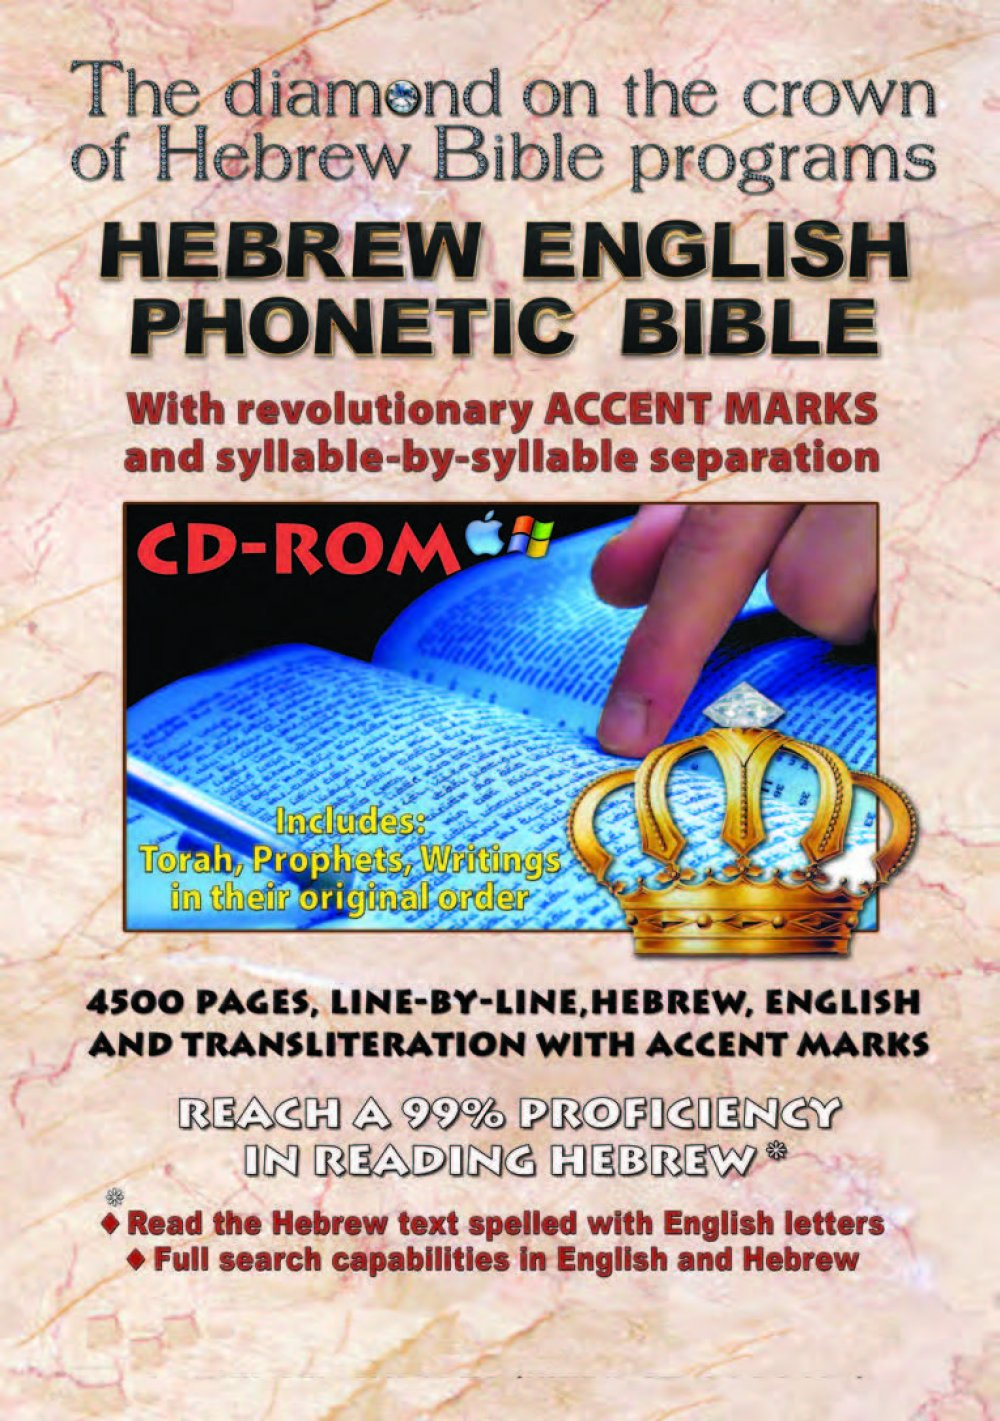 NIV Concordia Self-Study CD-ROM